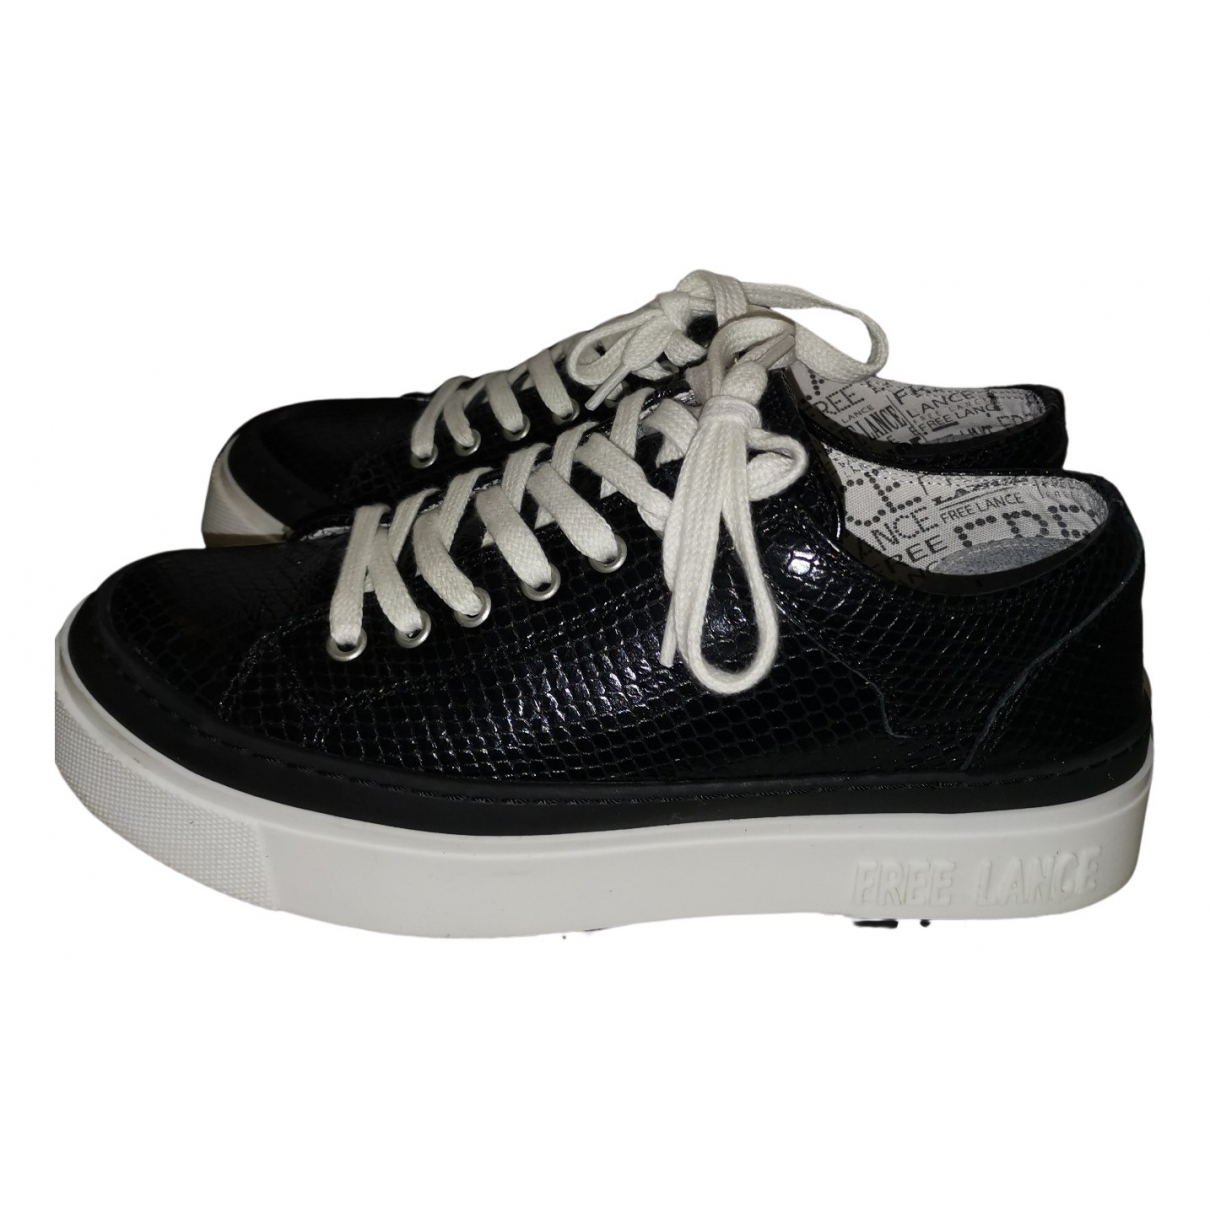 Free Lance N Black Crocodile Trainers for Women 38 EU